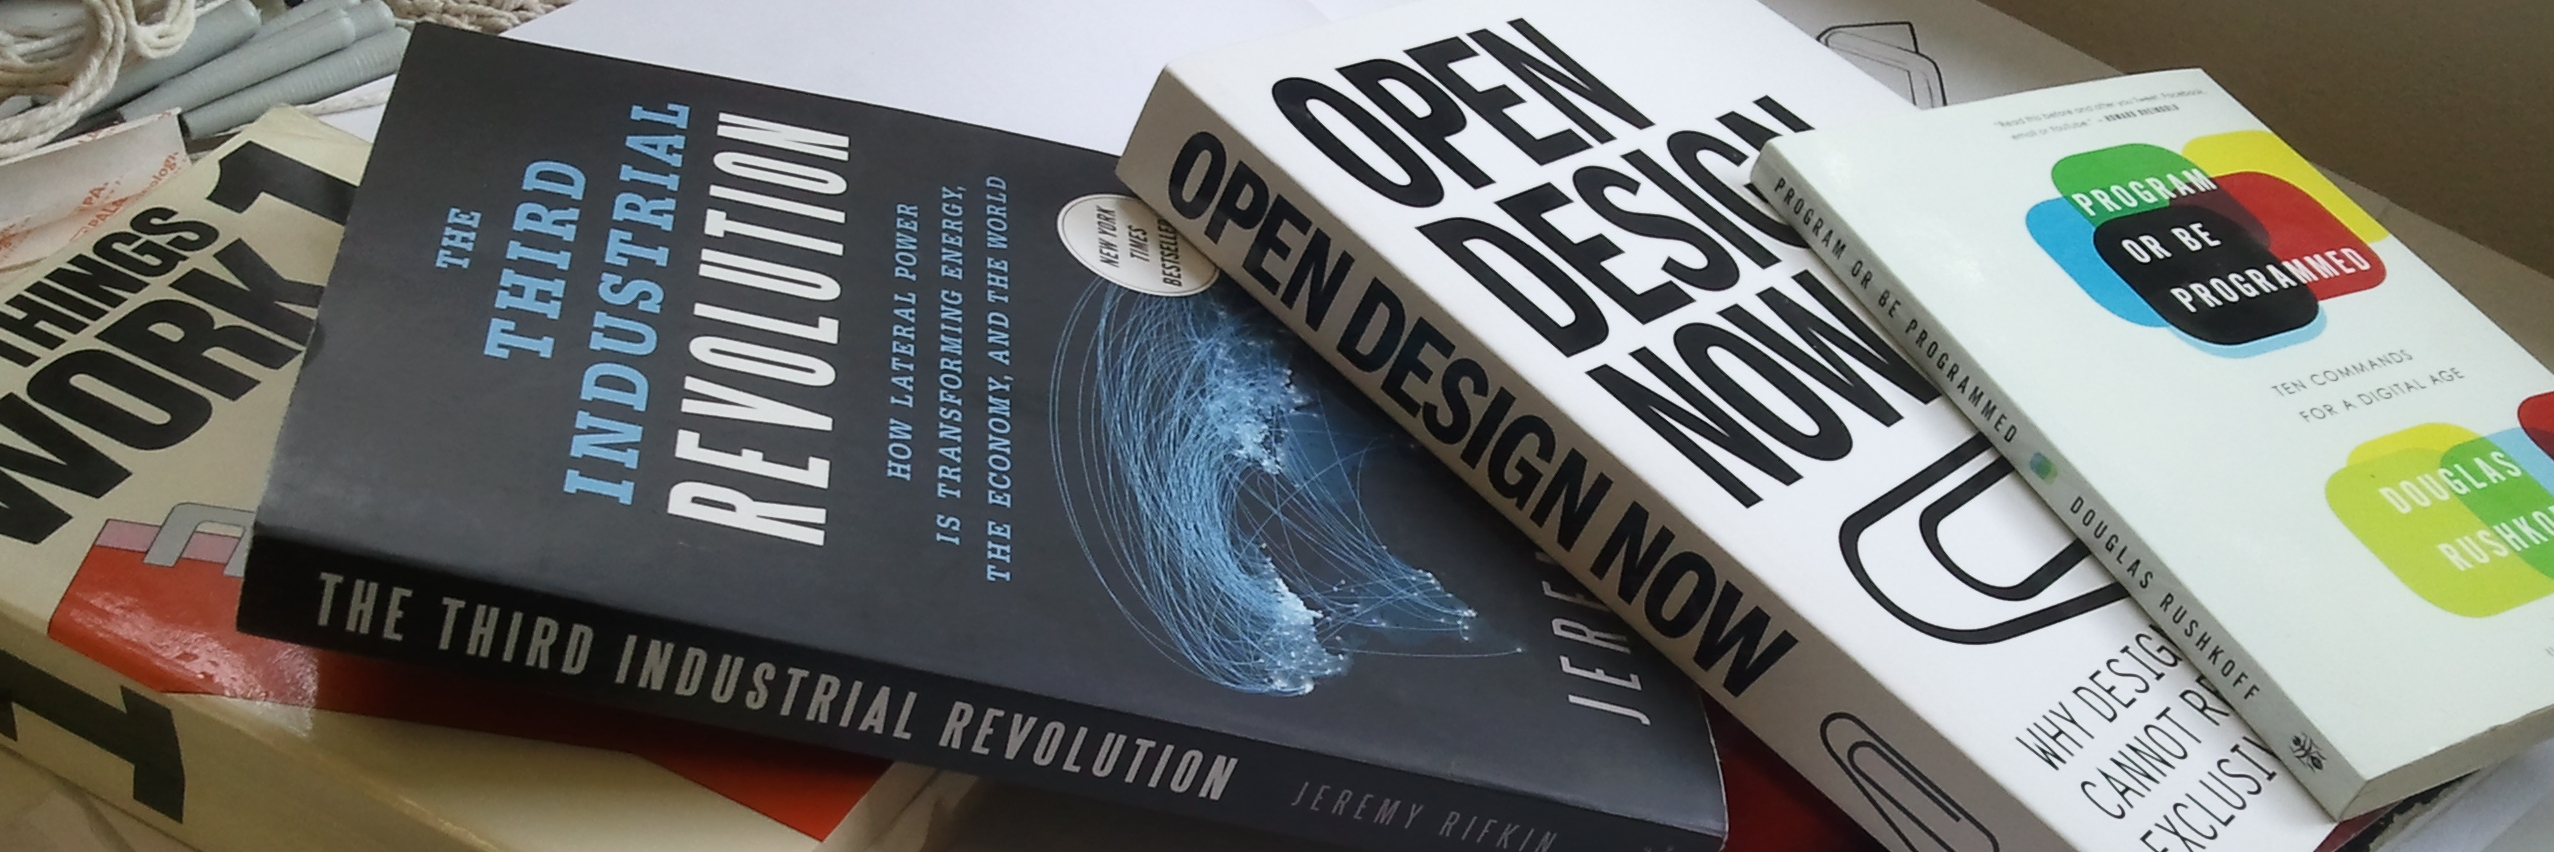 Open Source Product Innovation